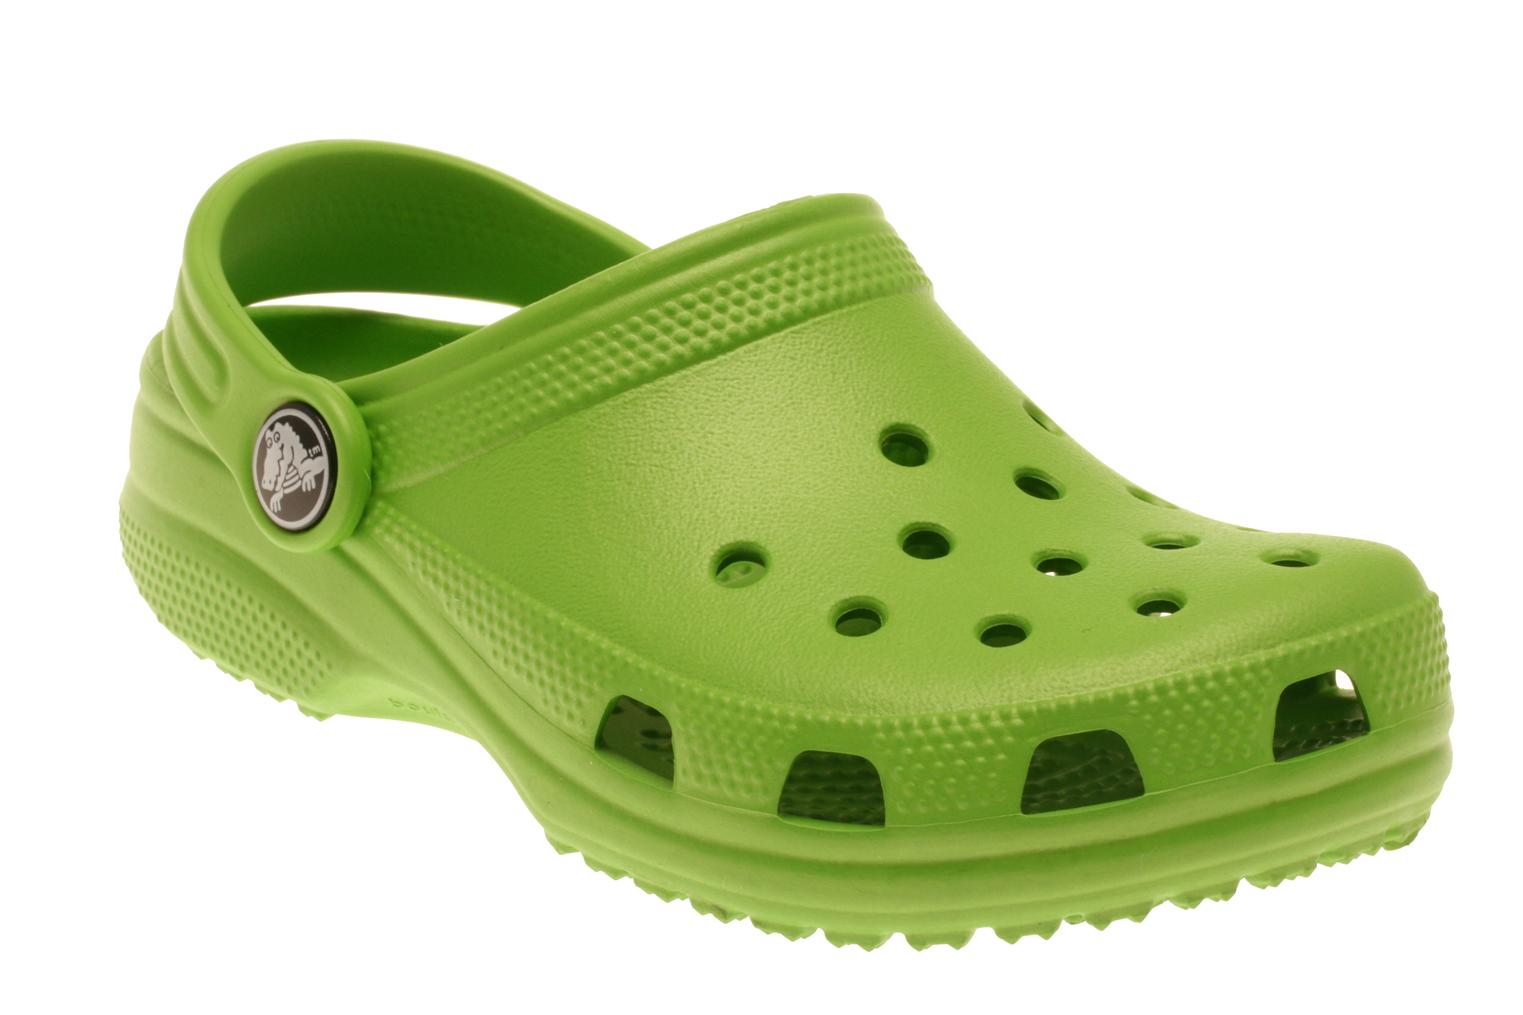 Crocs Kids Cayman Sandals In Green At Sarenza Co Uk 14756